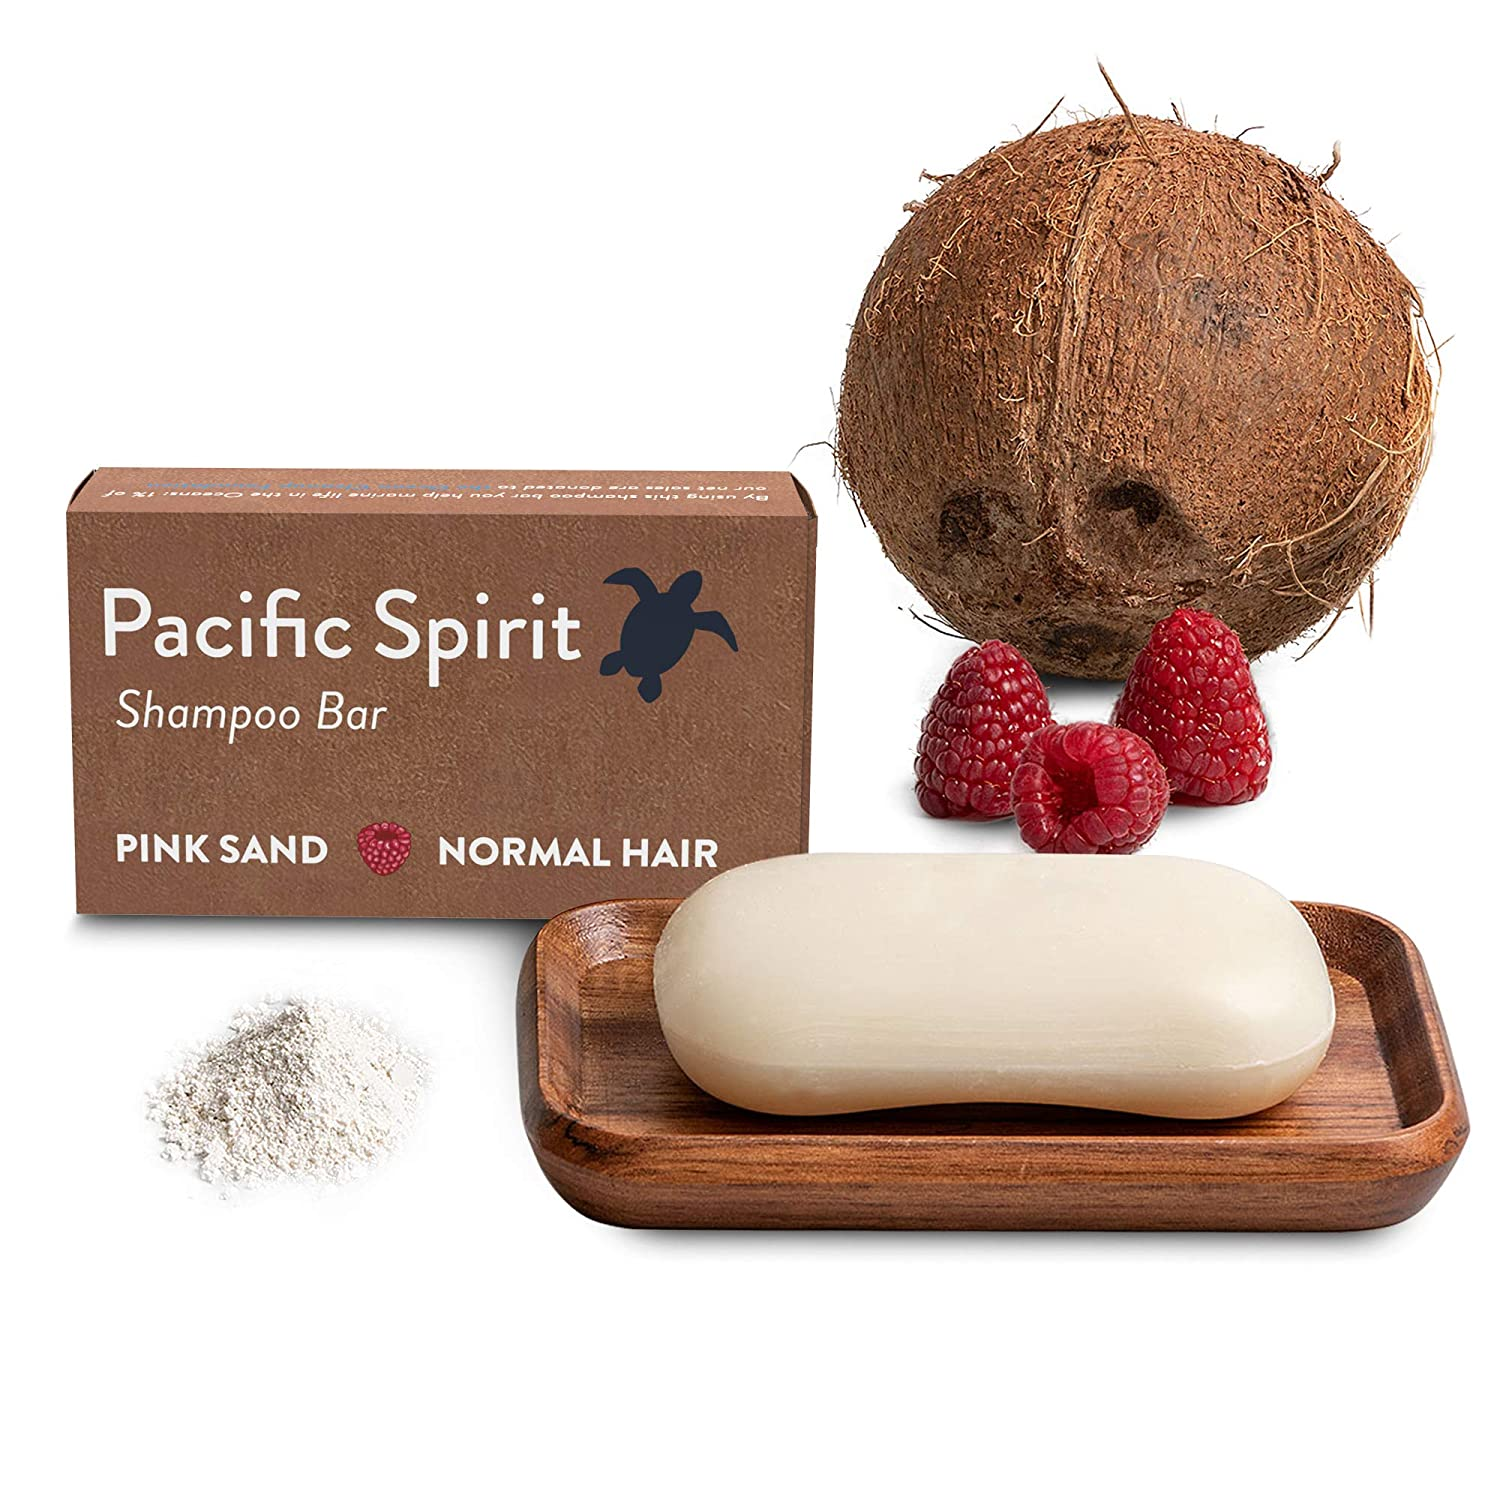 Shampoo Bar with Coconut Oil & Raspberry for Normal to Oily hair. Thick foam for a perfect cleaning. Great natural scent. Sulfate-Free, Soap-Free, Vegan, Zero Waste. 3.53 oz by Pacific Spirit